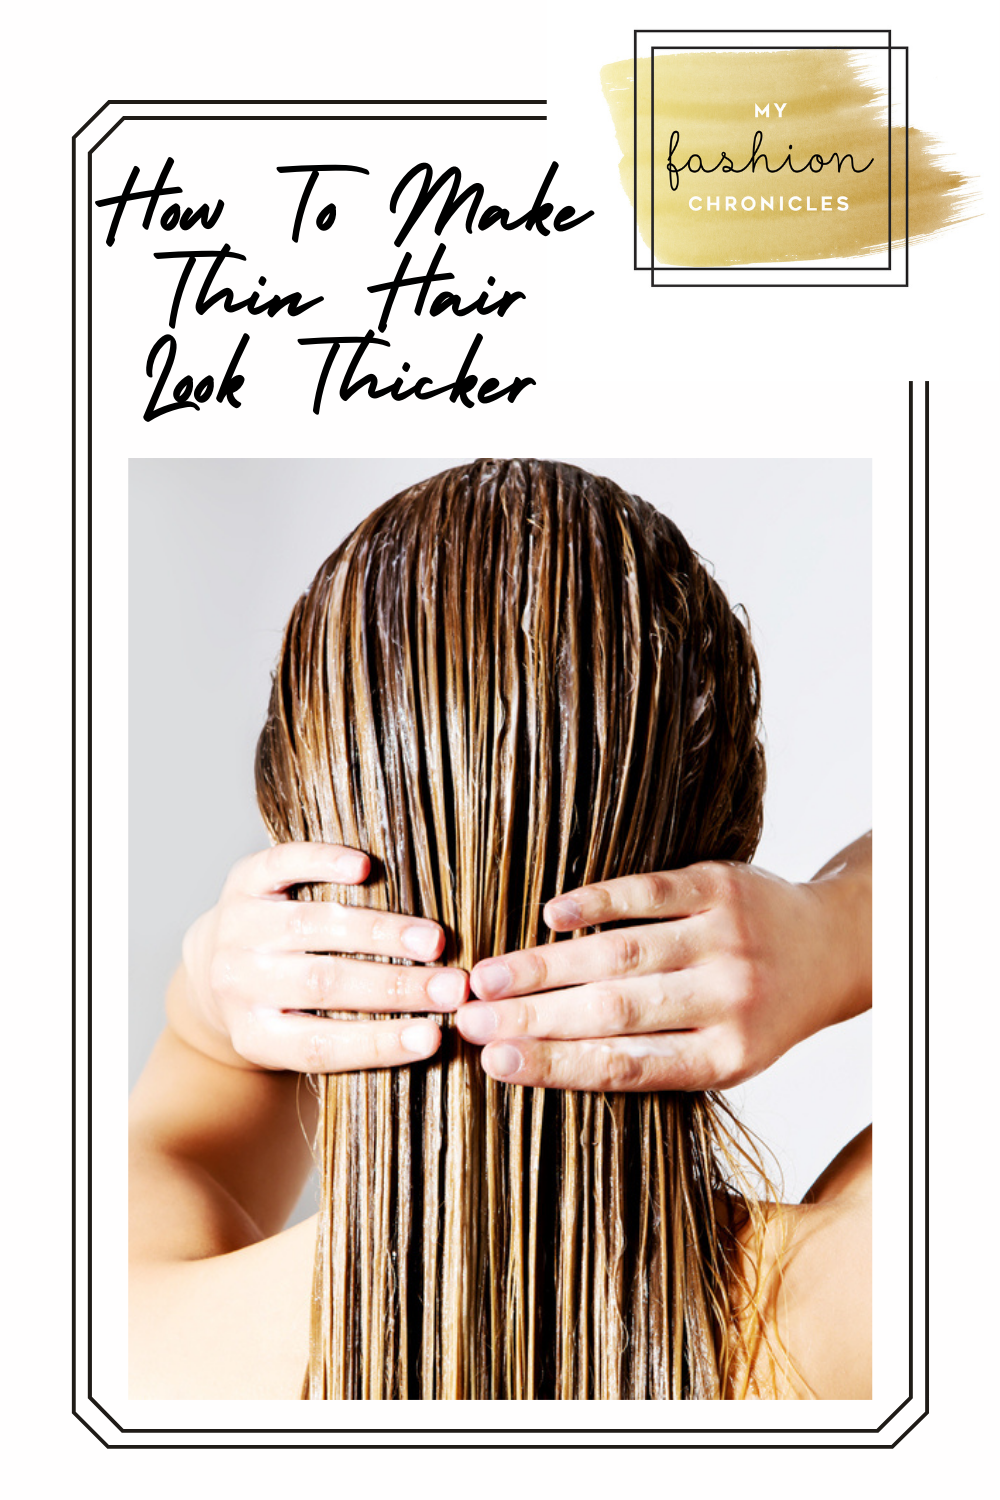 Myfashionchronicles.com will help you look your best 24/7. Always keep your hair in tip-top shape. If you struggle with thin, flat hair, check out these ways you can make it look thicker instantly!